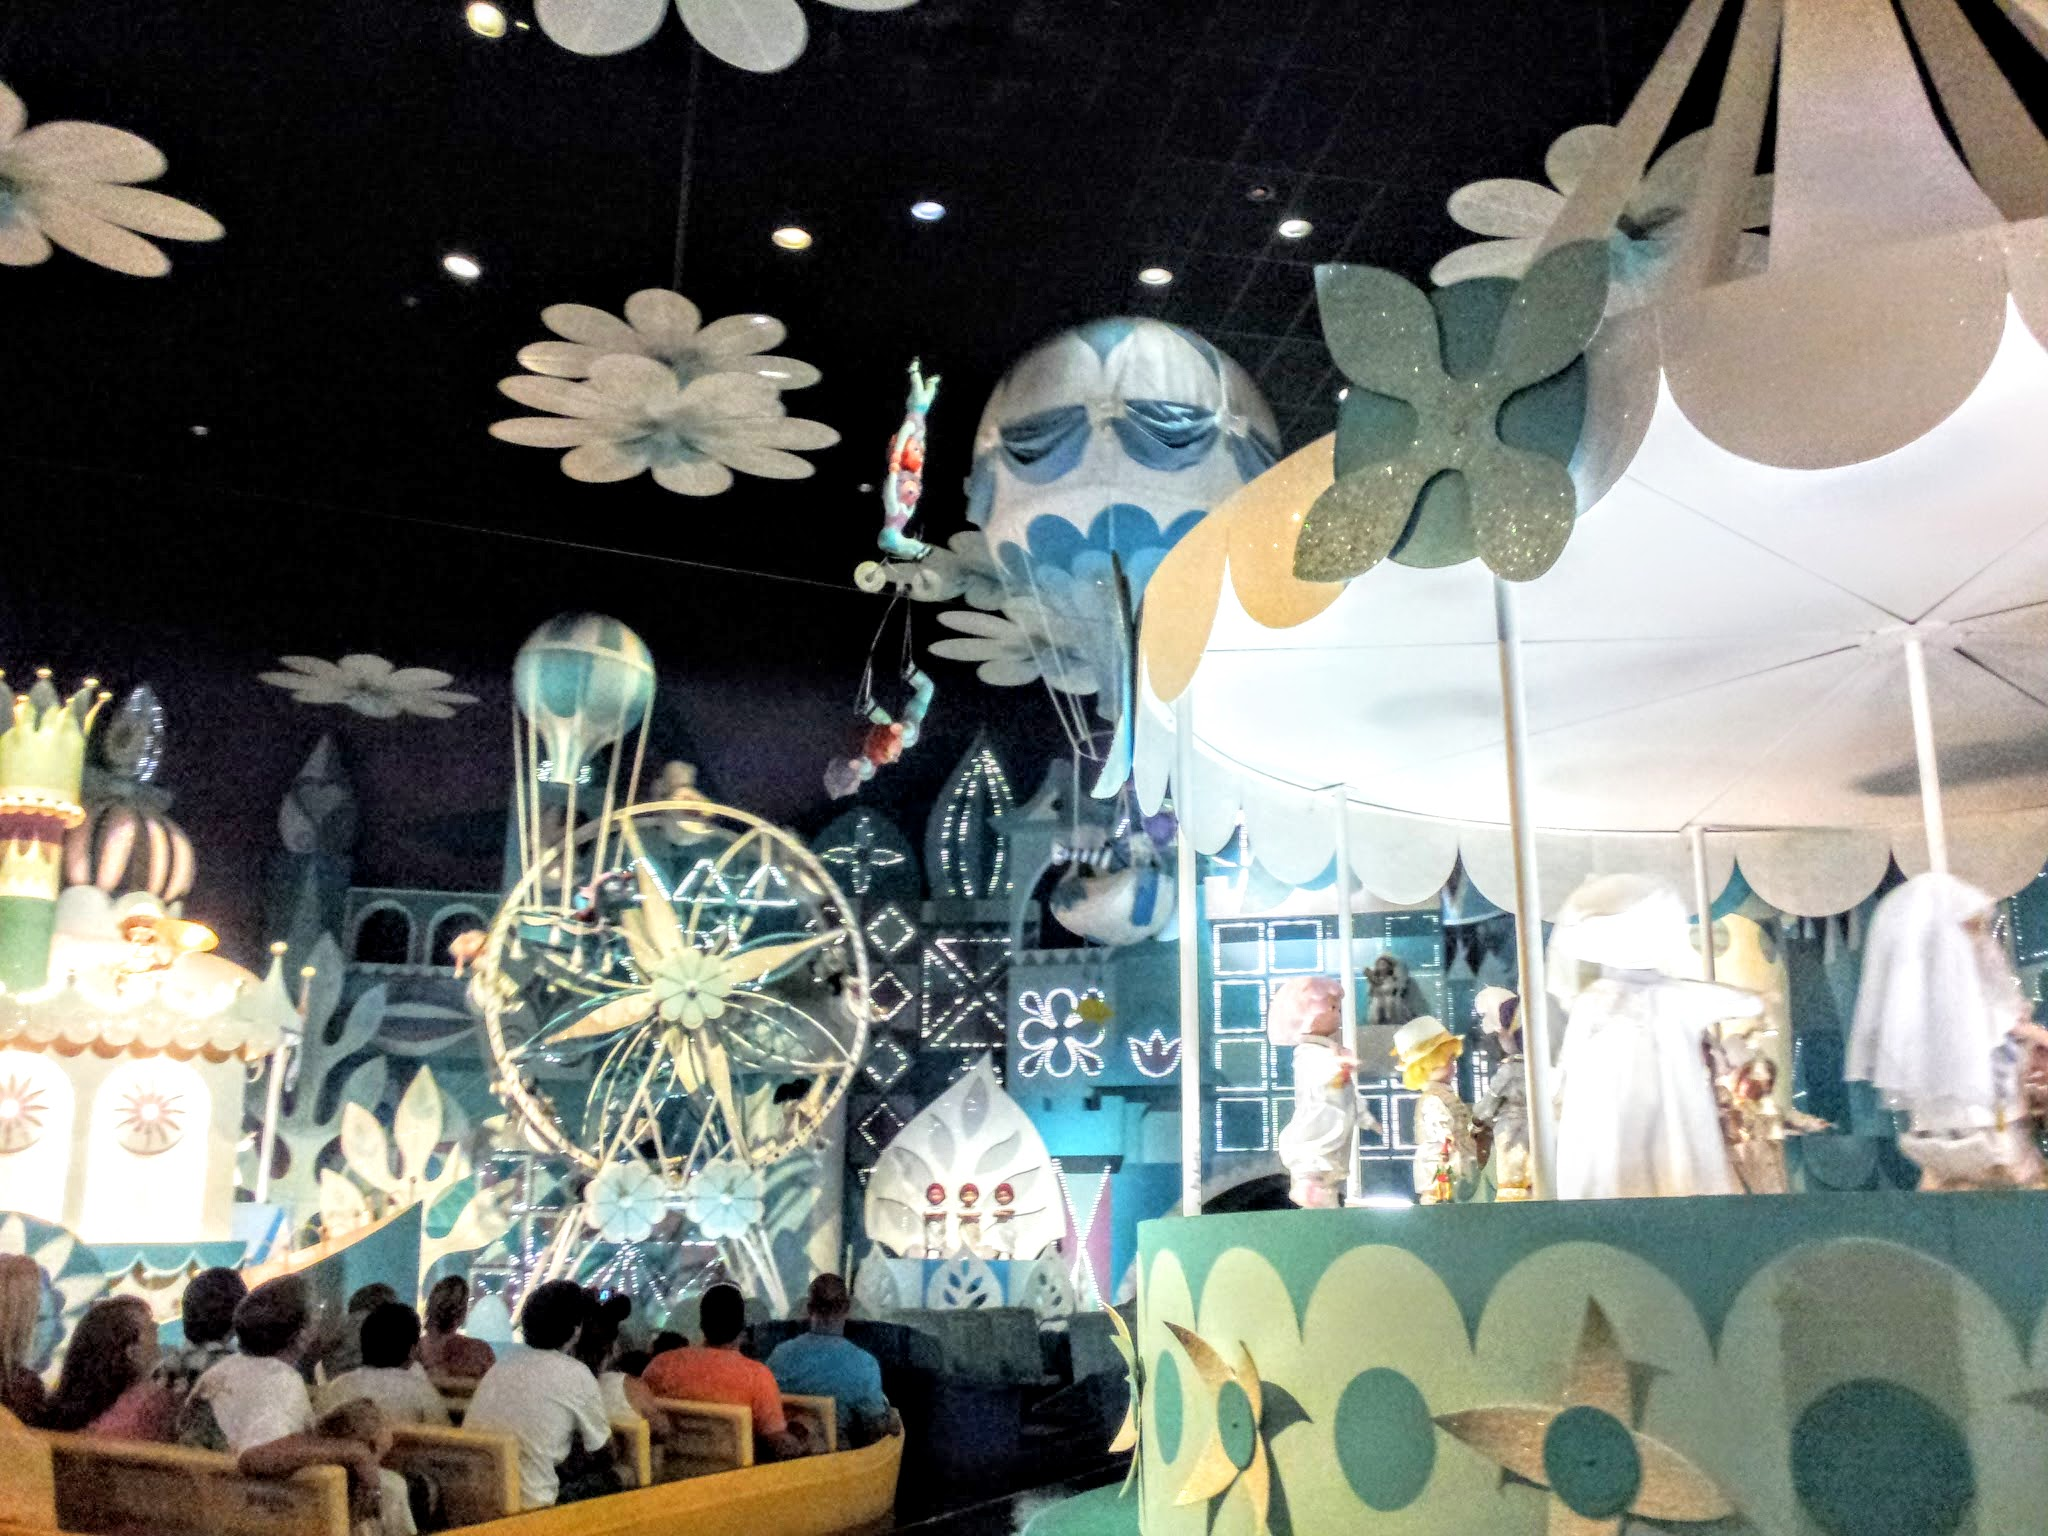 It's a Small World is one of Things You Must Do in Magic Kingdom